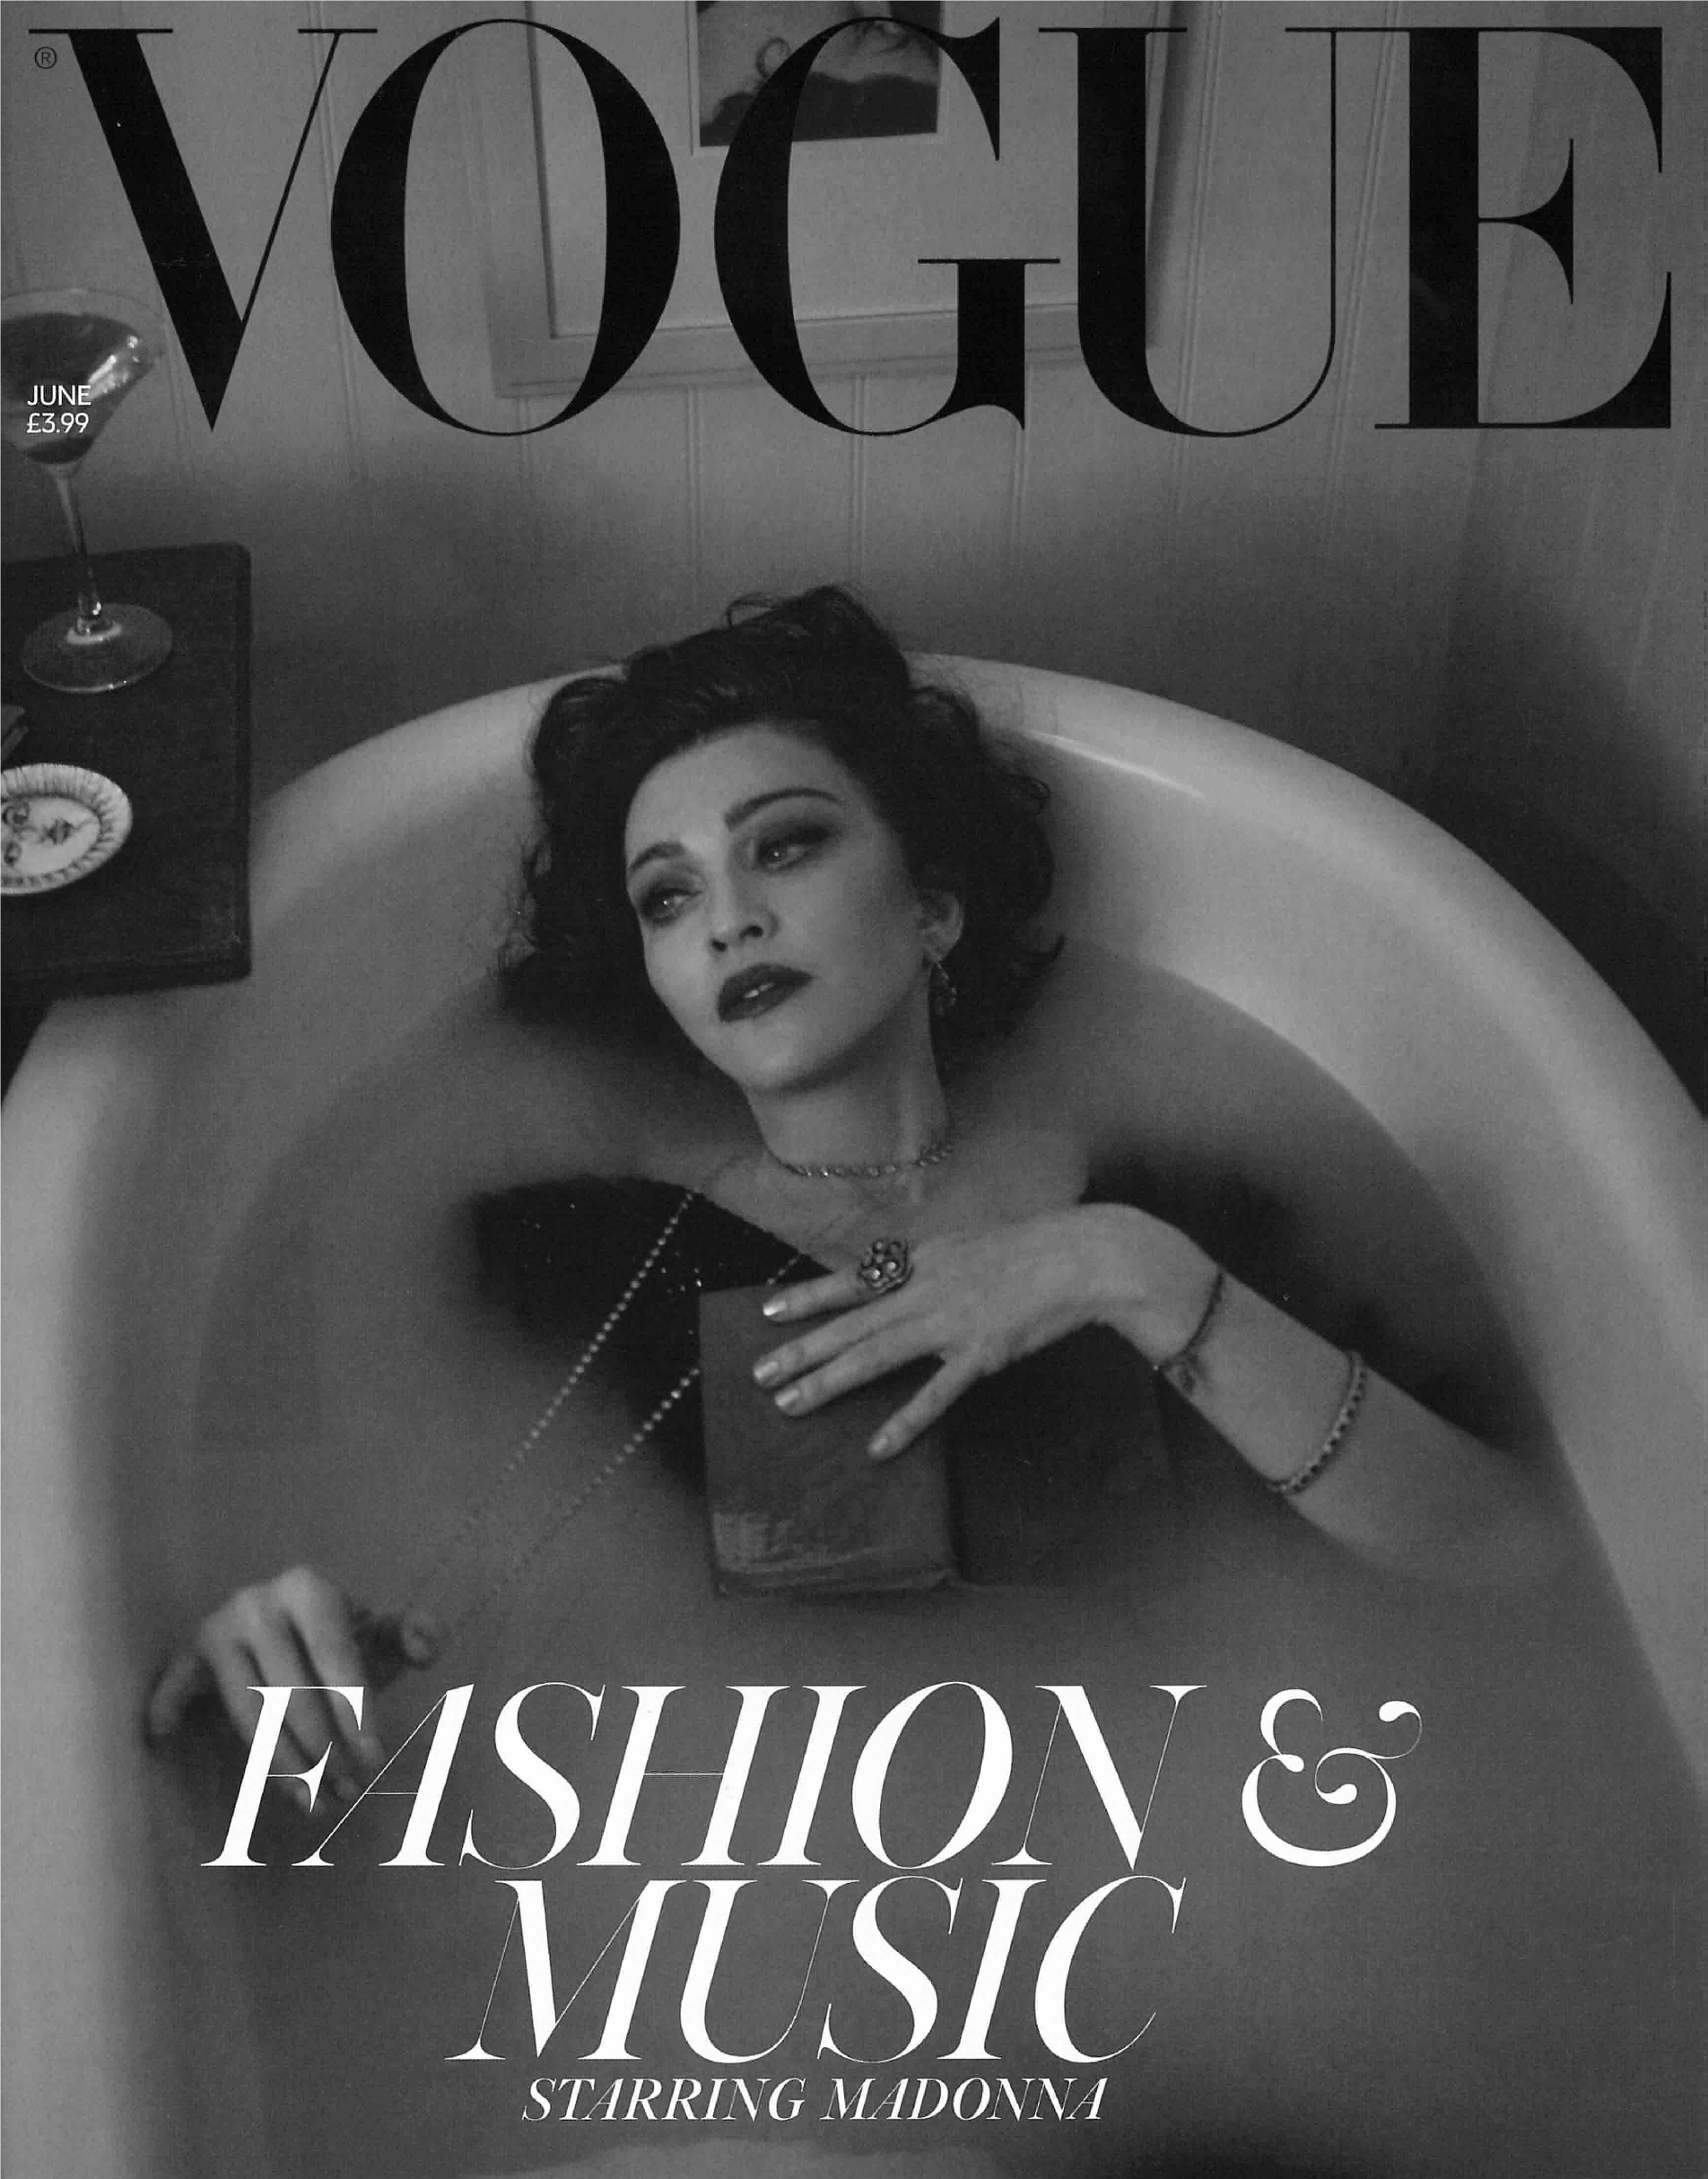 helena_Jay_Vogue.png